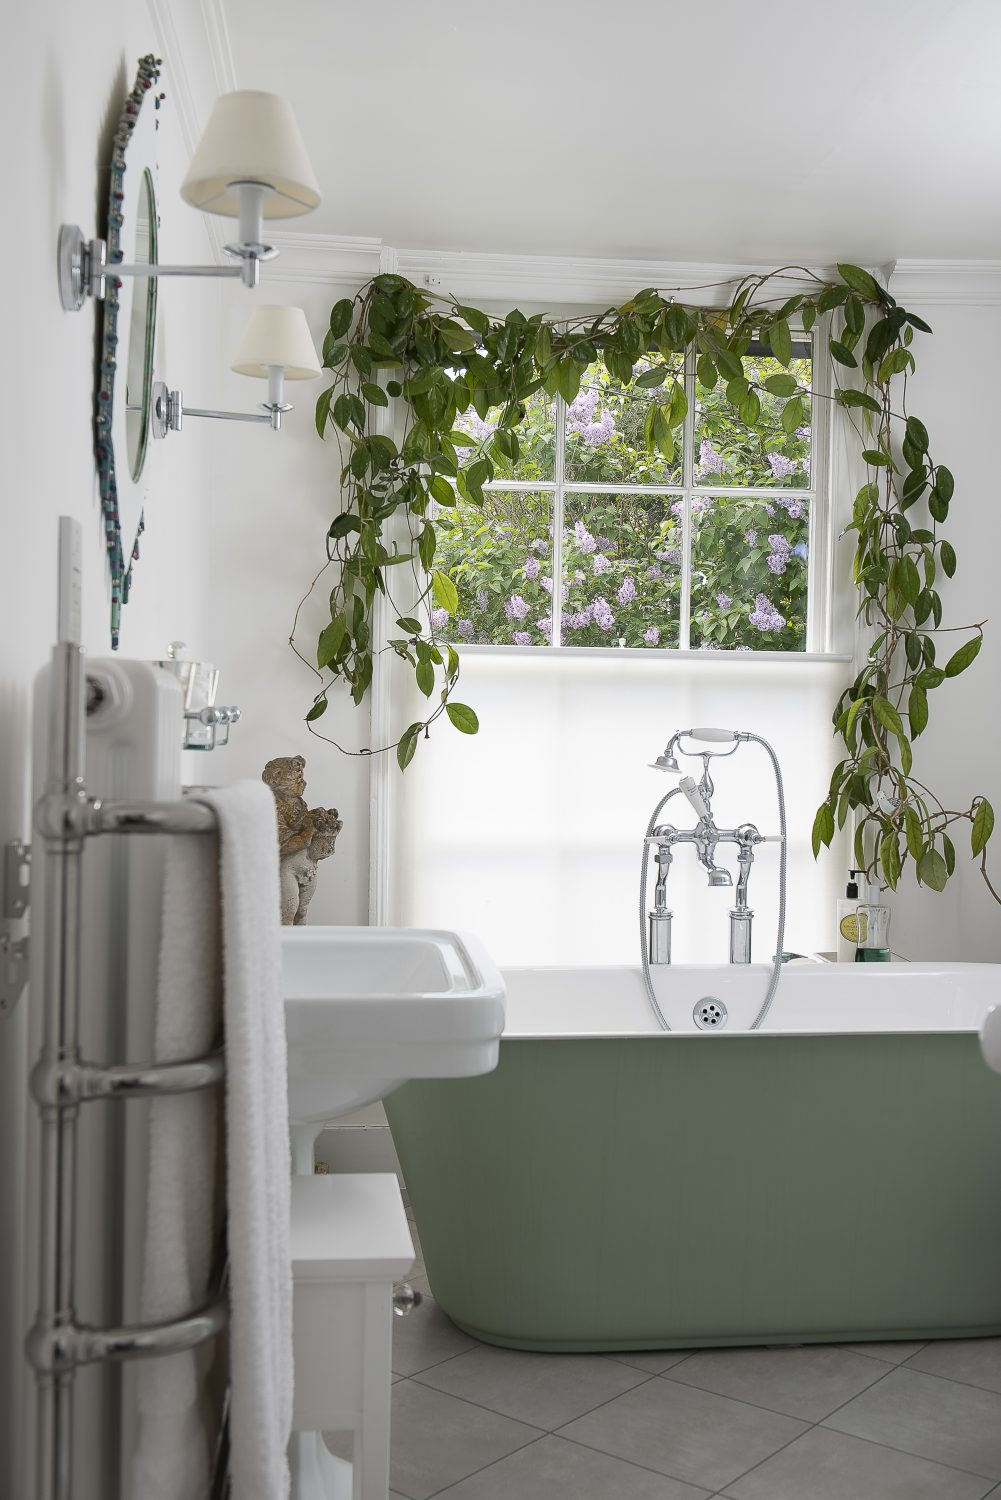 As you enter the upstairs bathroom, a wonderful hoya plant frames the large window above the sage green roll-top bath and gives a view out to a lilac tree in full bloom.